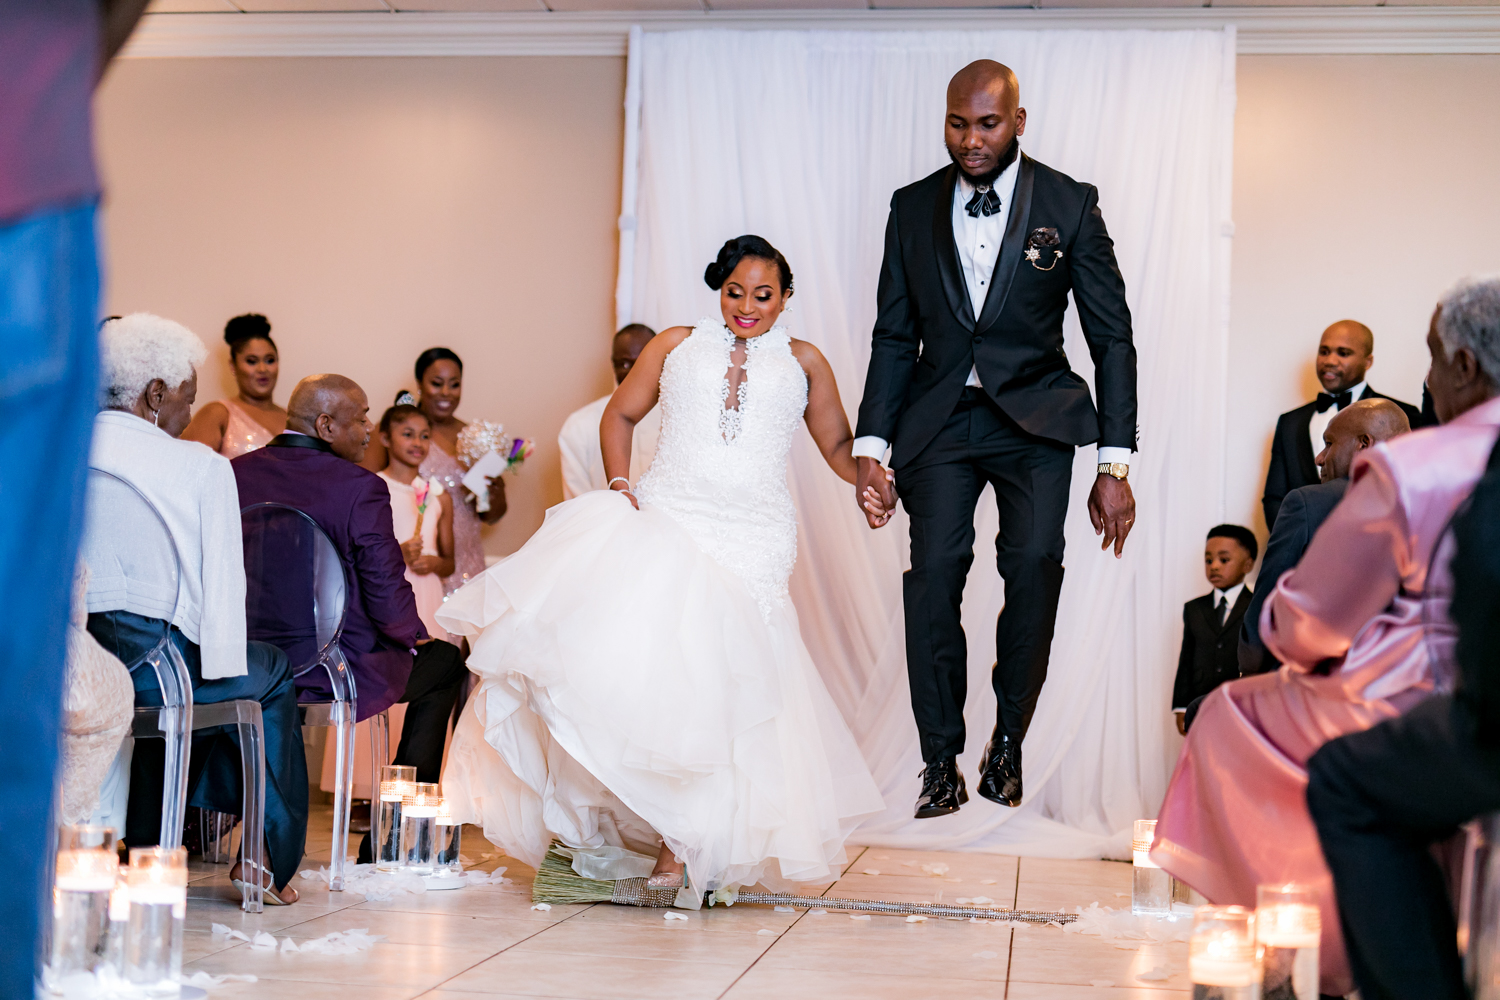 Bride and groom jumping the broom.